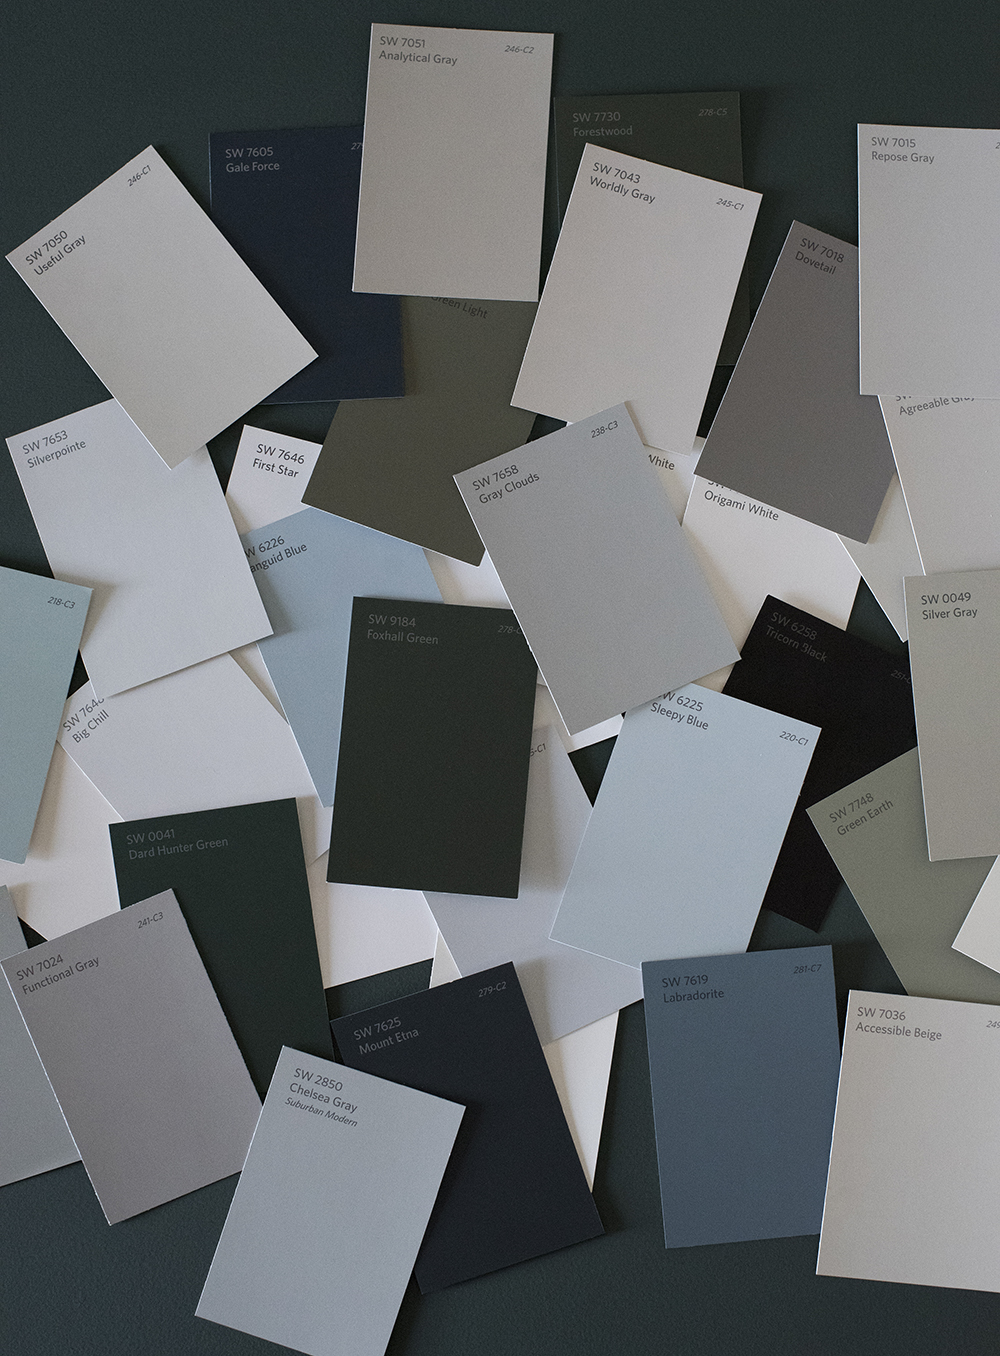 Favorite Paint Colors (As Seen in My Home) - roomfortuesday.com